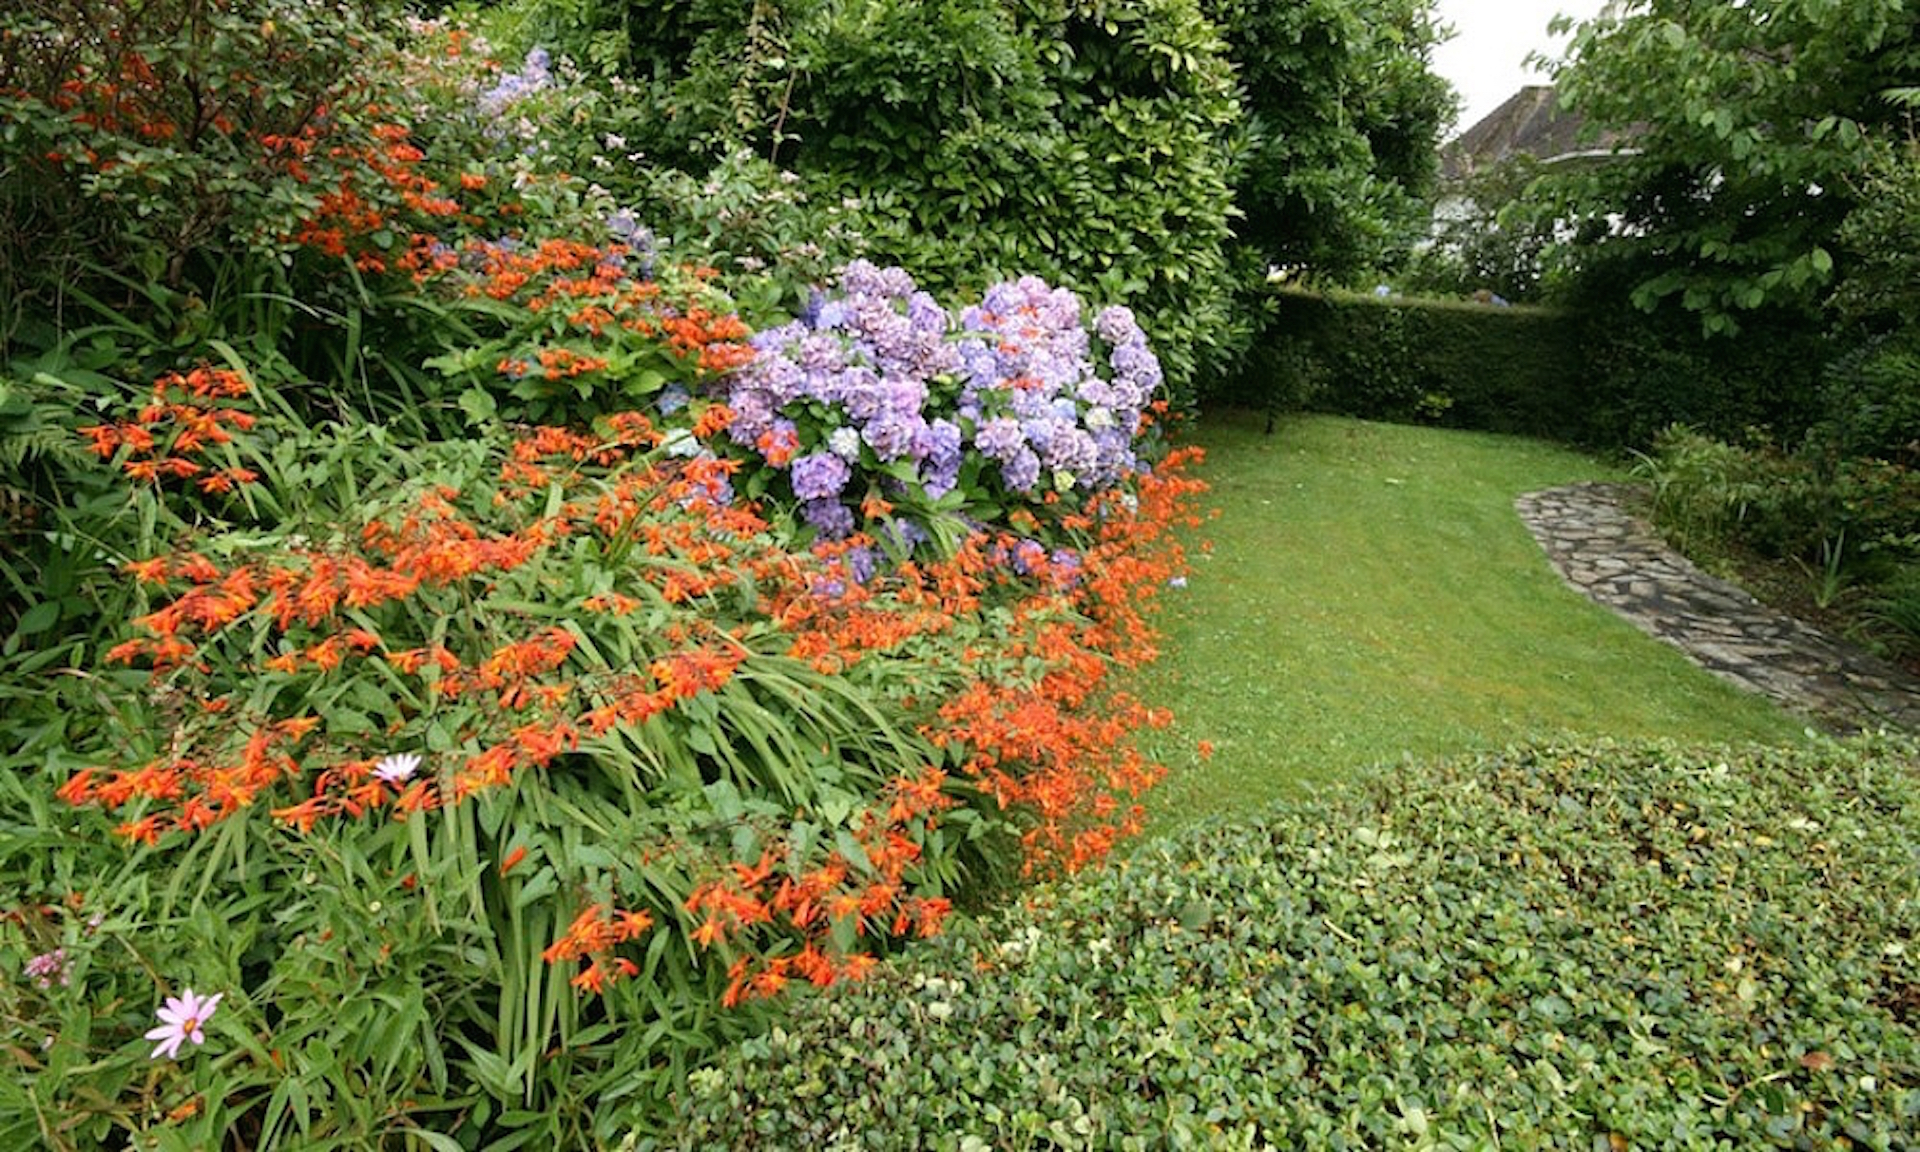 st-austell-house-english-rentals-large-family-friendly-private-gardens--317-2636778_2400_1800